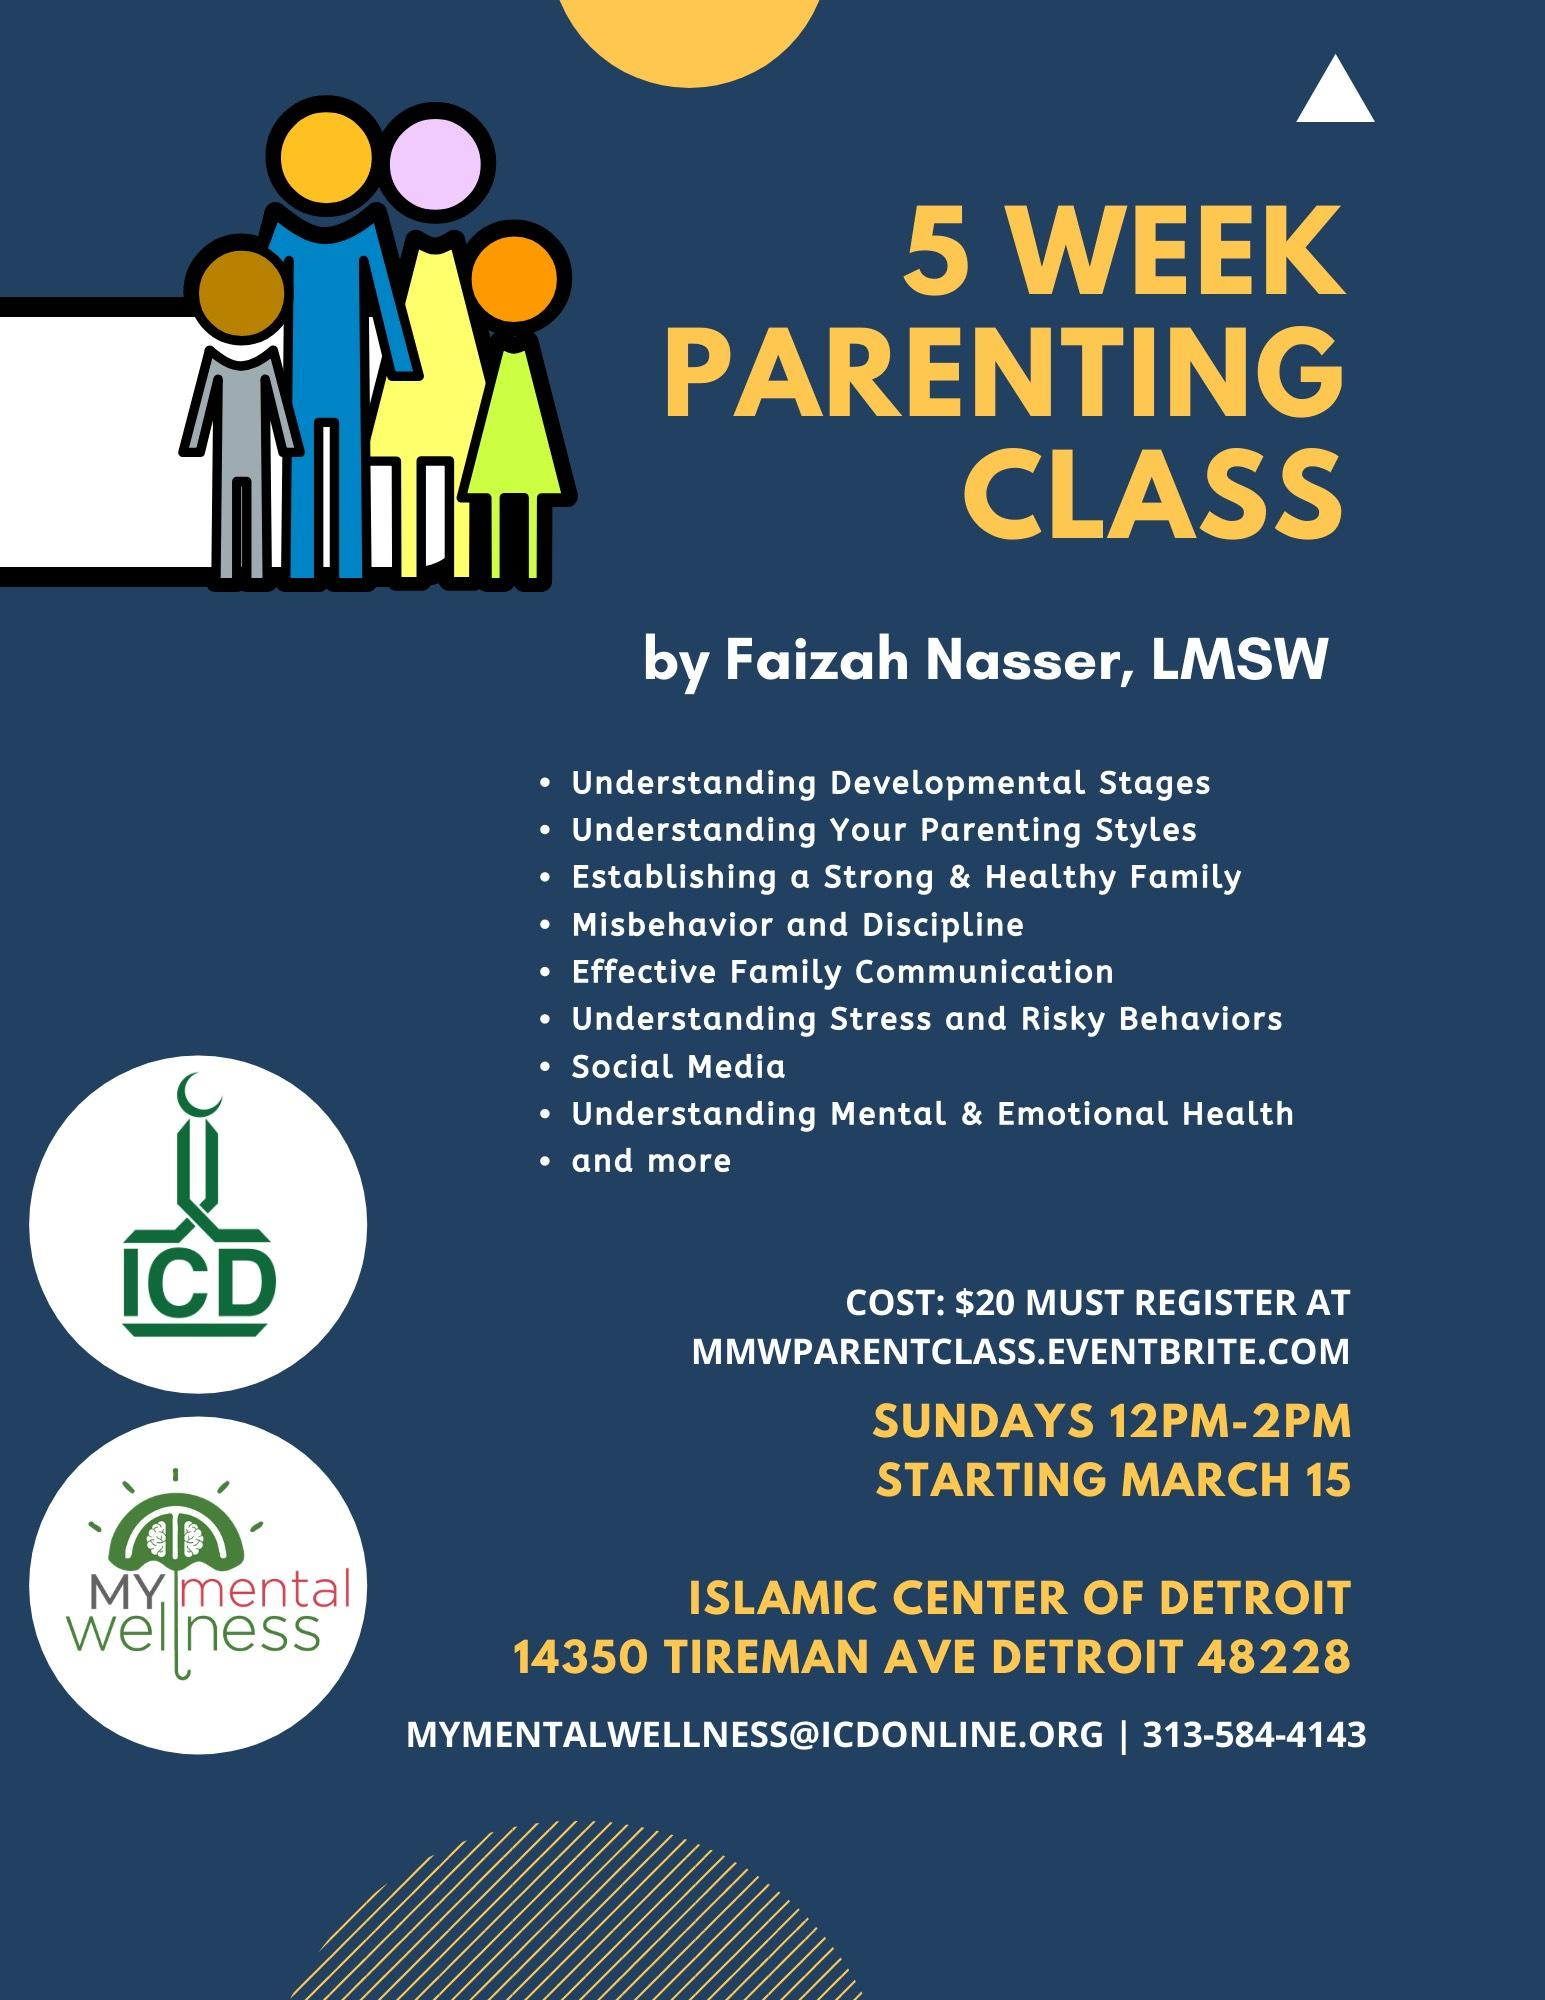 MY-Mental Wellness and ICD Present: 5 Week Parenting Class